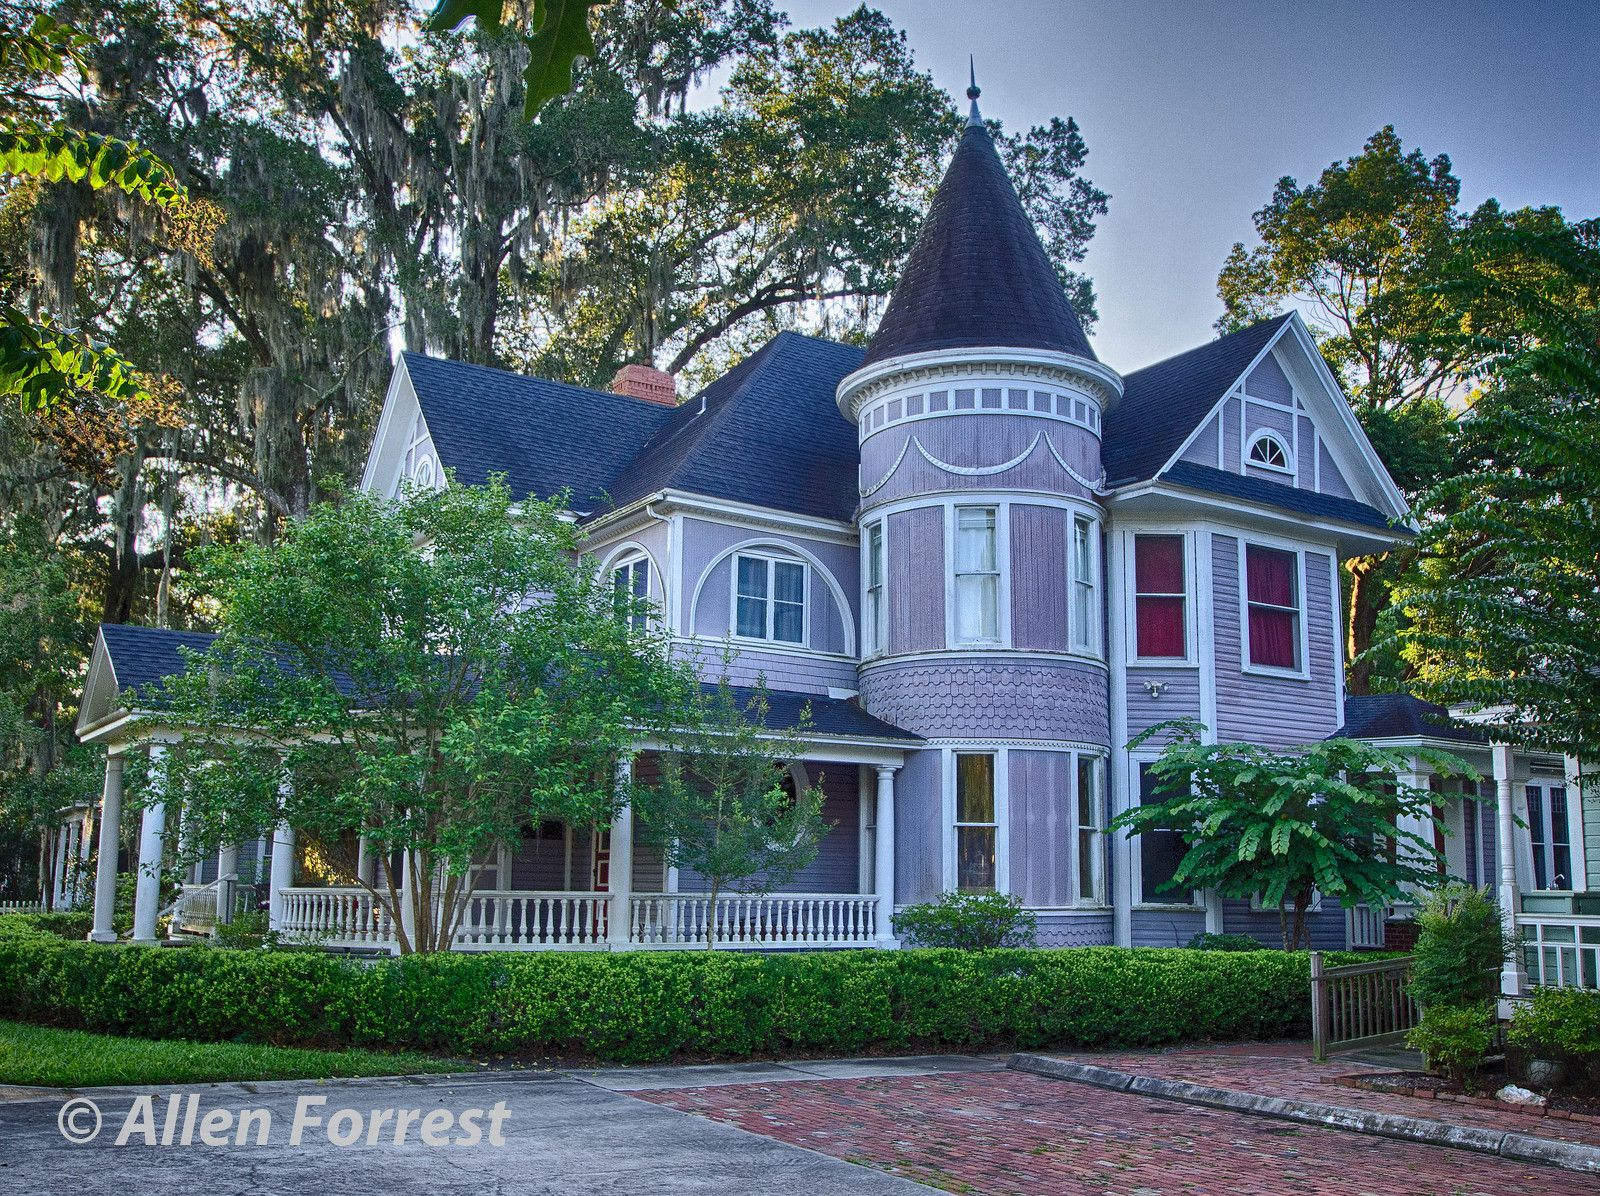 Hodges House In Gainesville Florida Southeast Historic District Built In 1887 It Is An Impressive Quee Victorian Homes Architecture Victorian Architecture